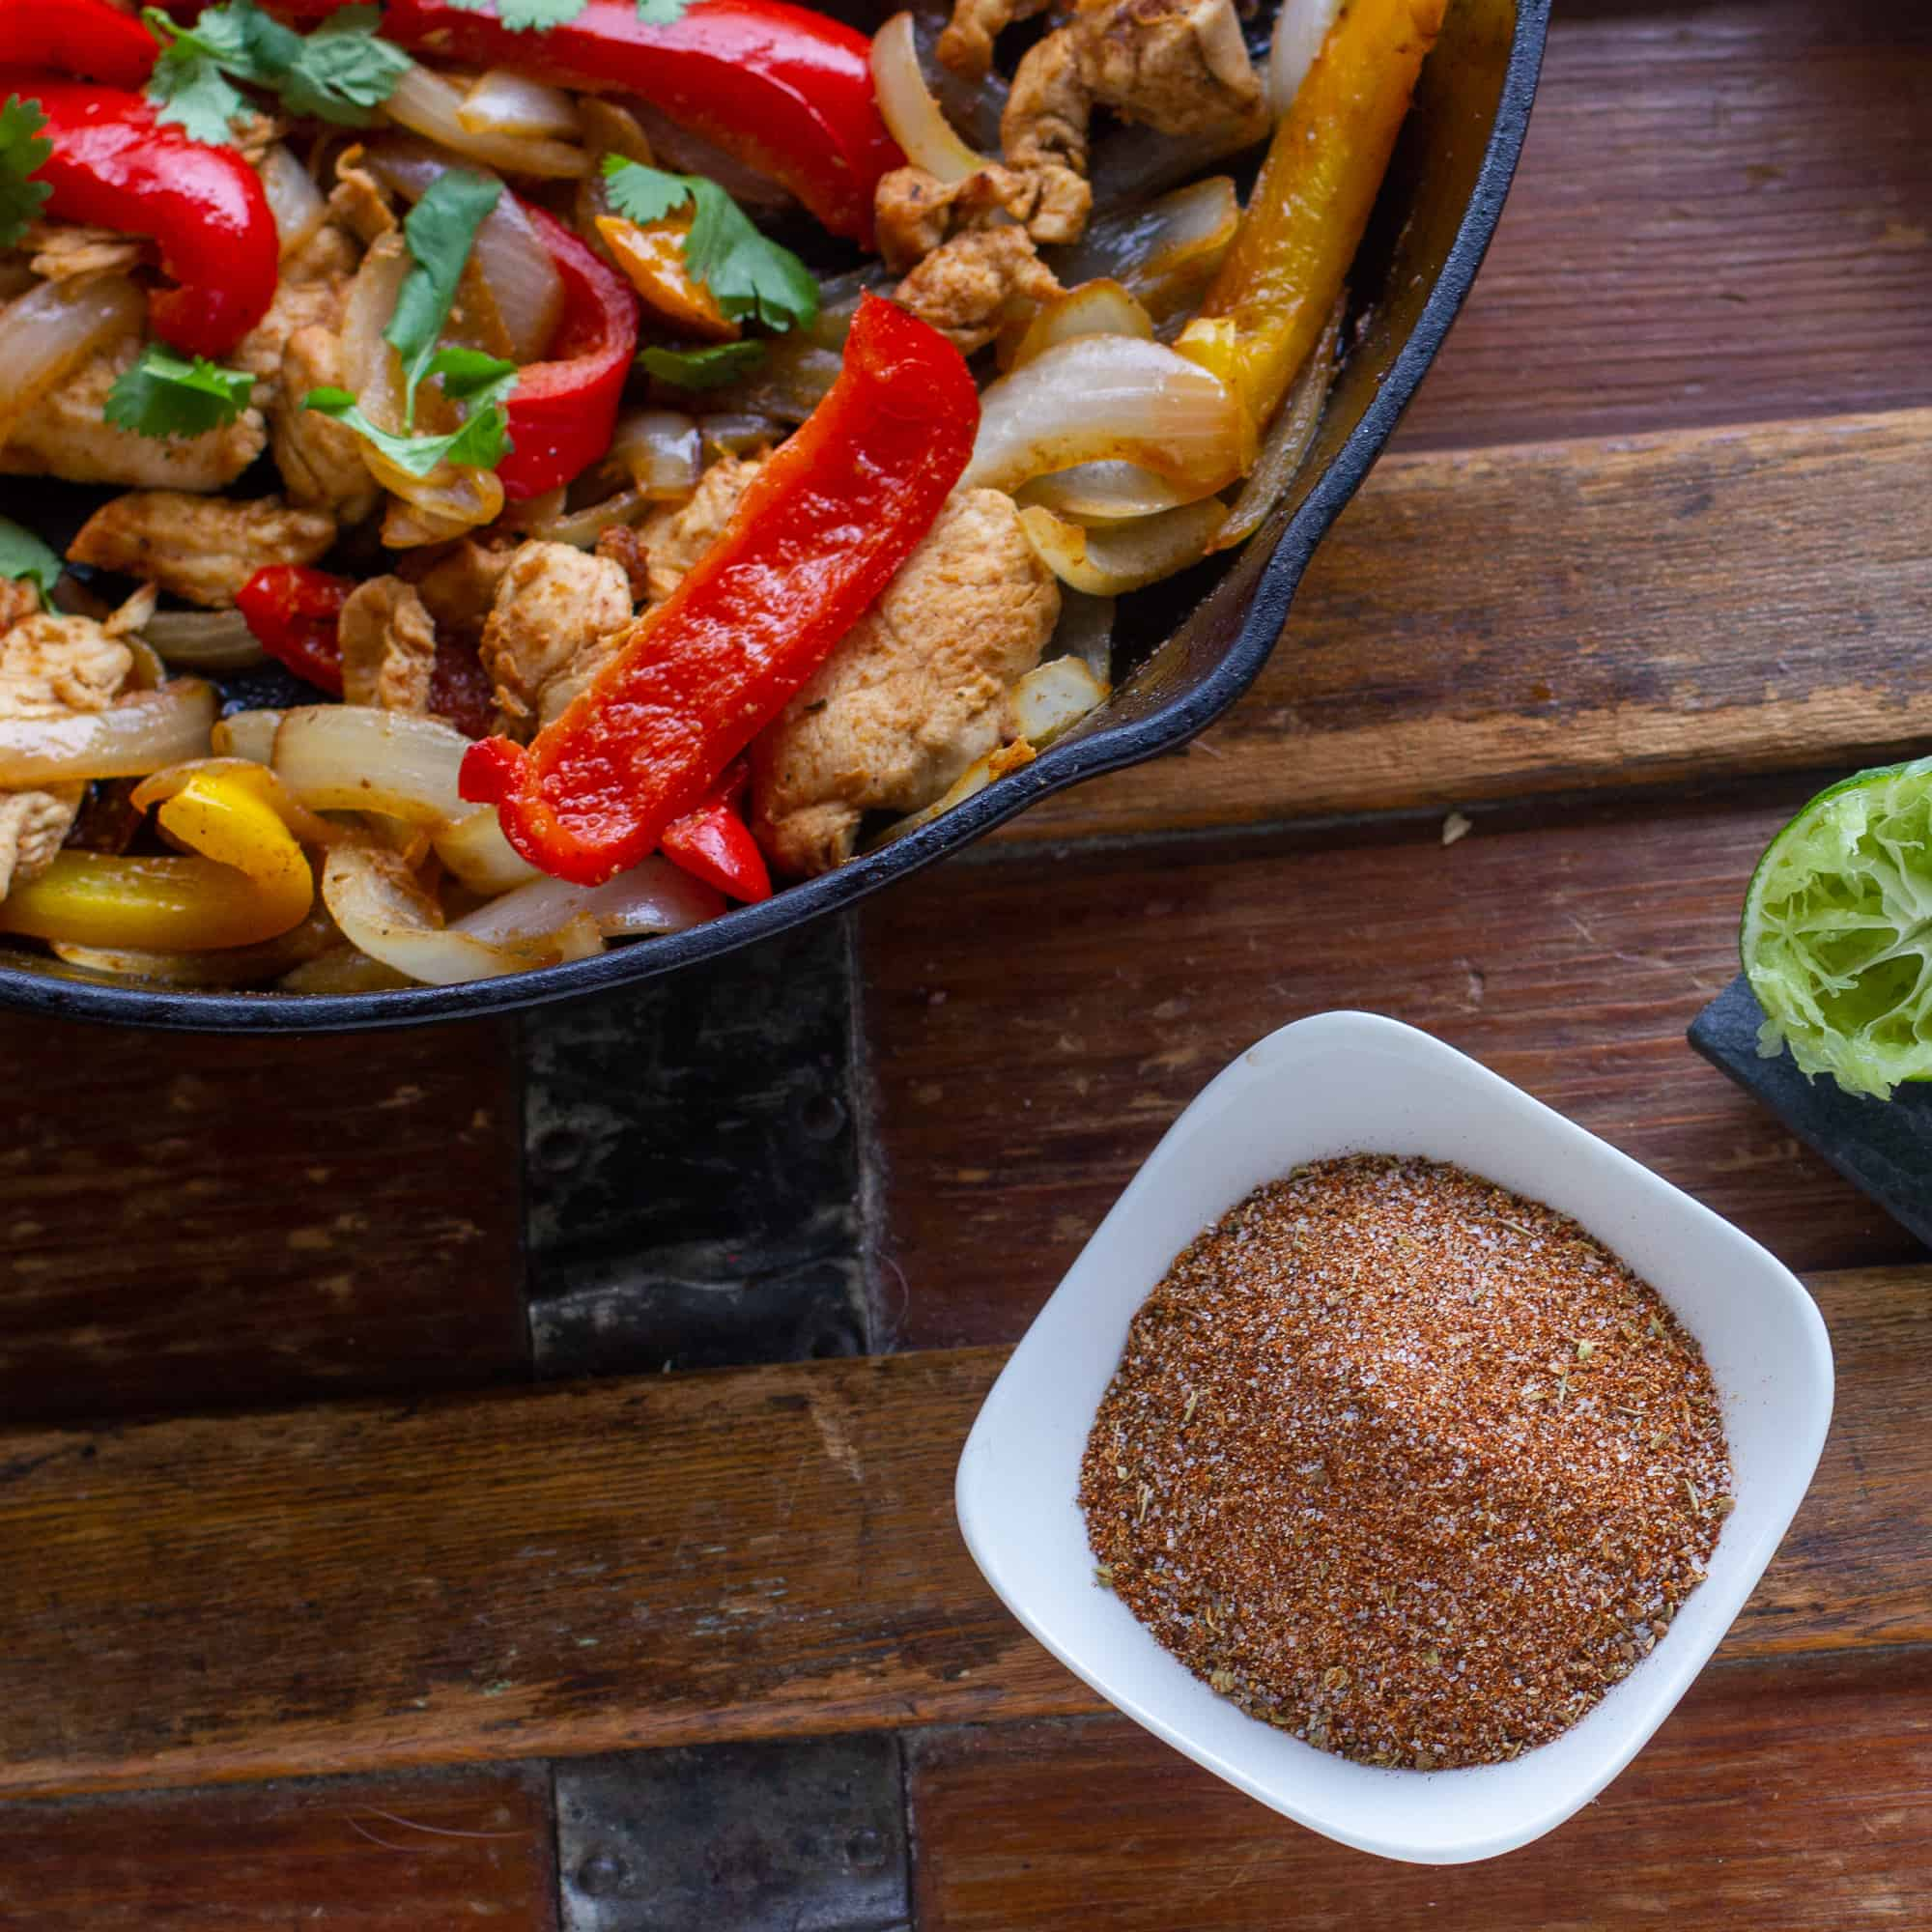 Simple spice mix for Mexican fajitas and tacos